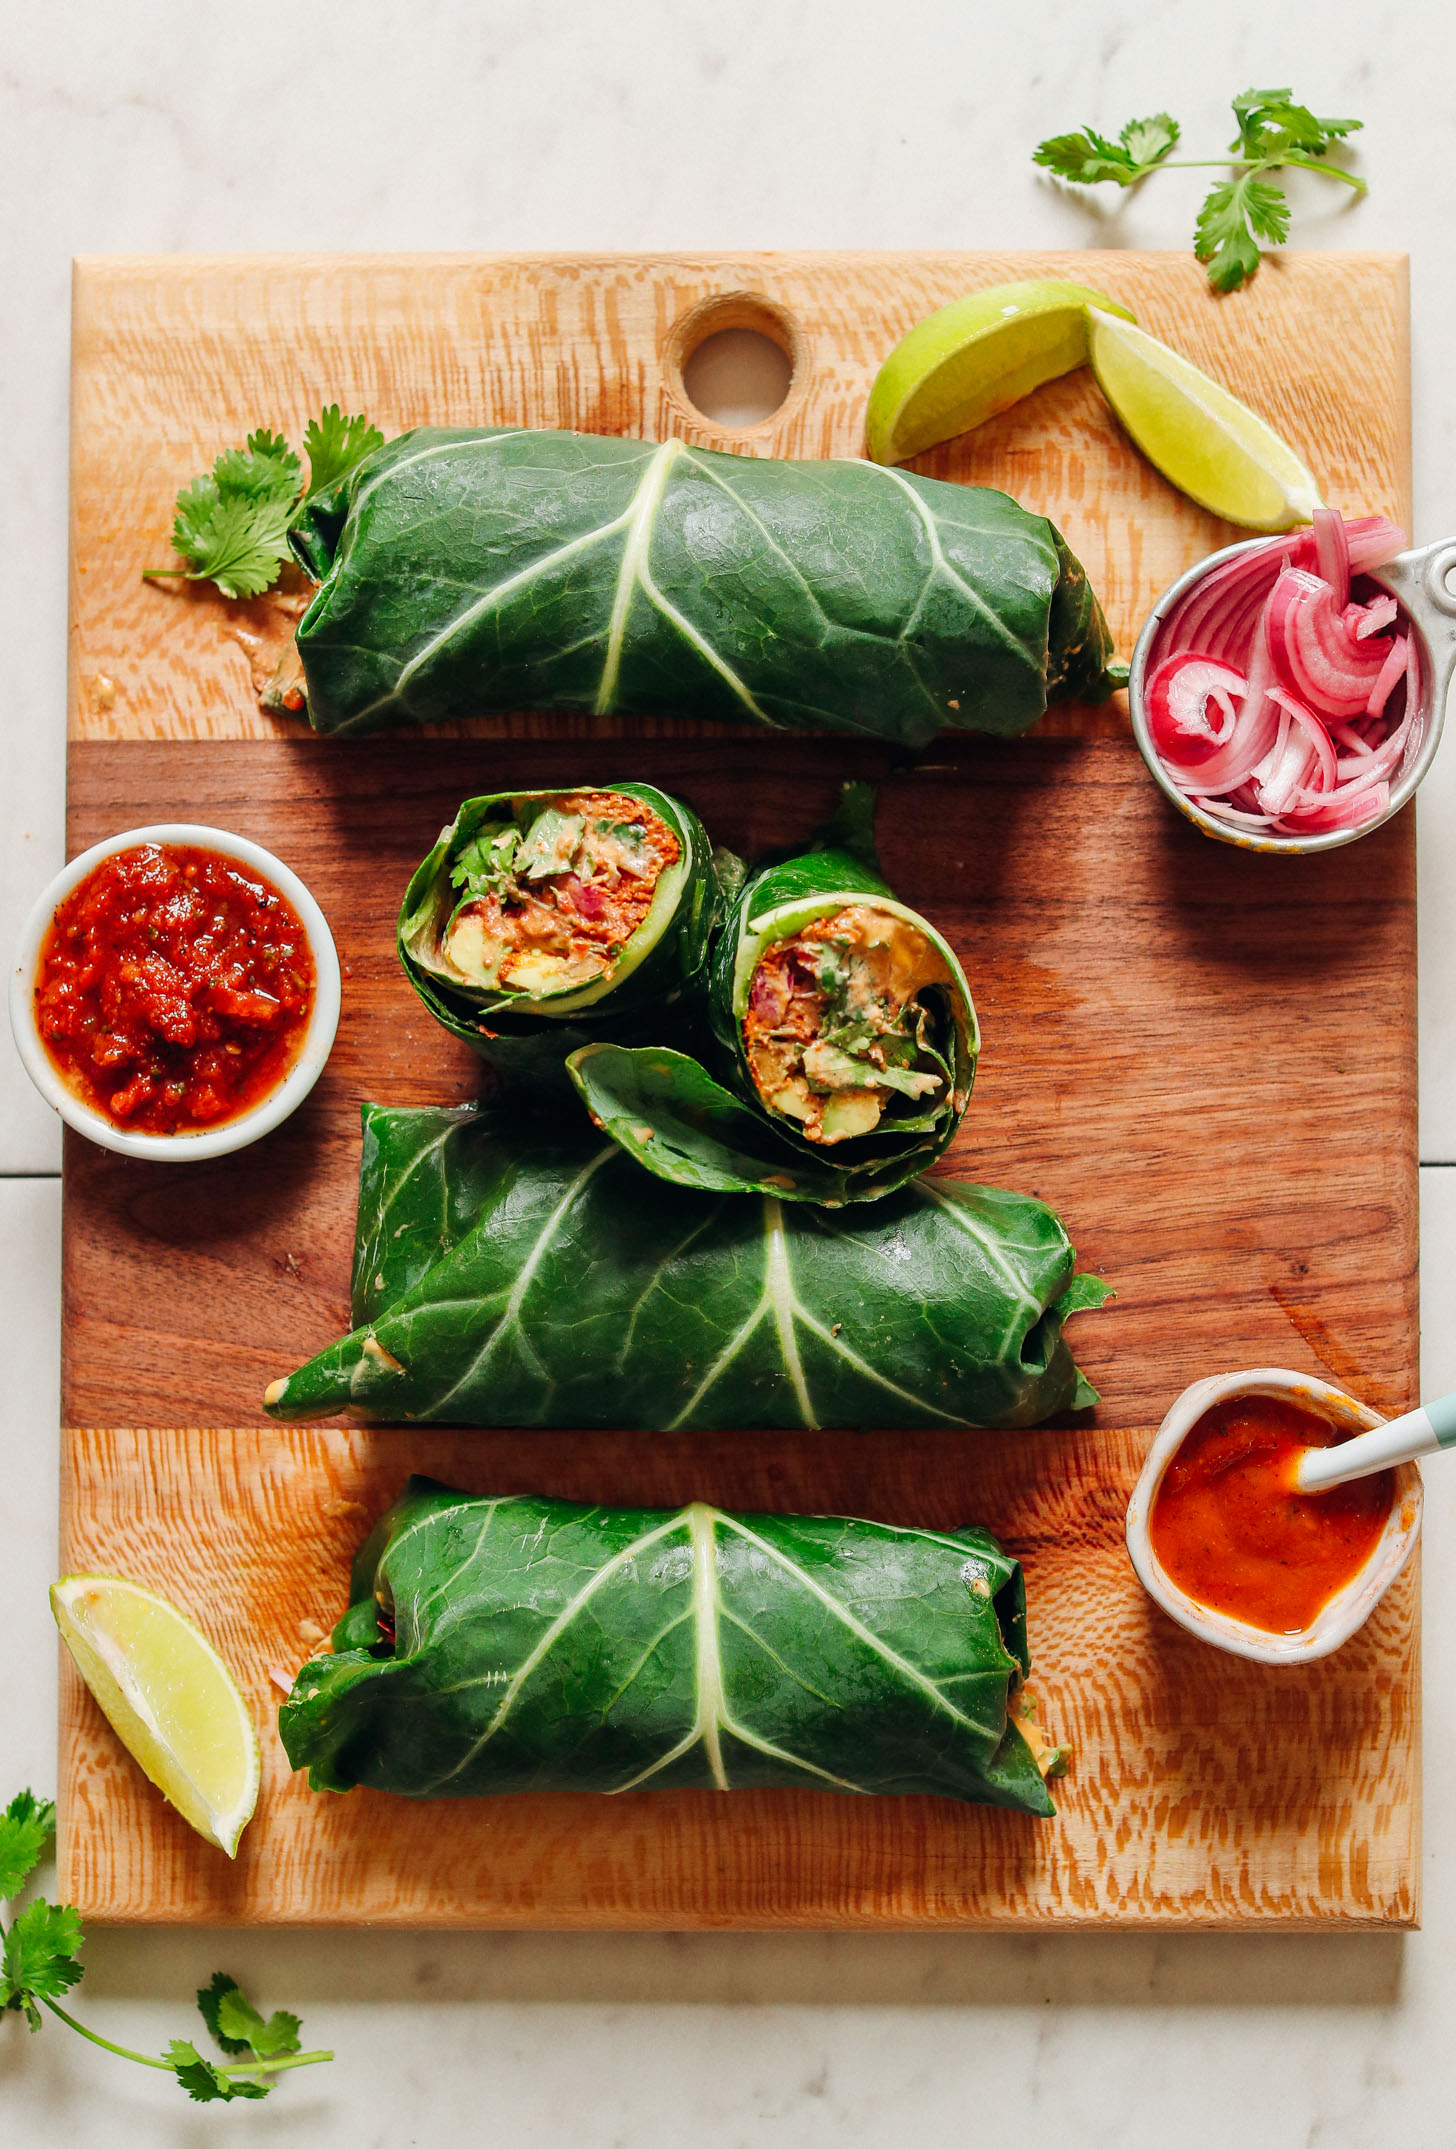 Wood cutting board with gluten-free Raw Vegan Burritos with Mexican-inspired flavor